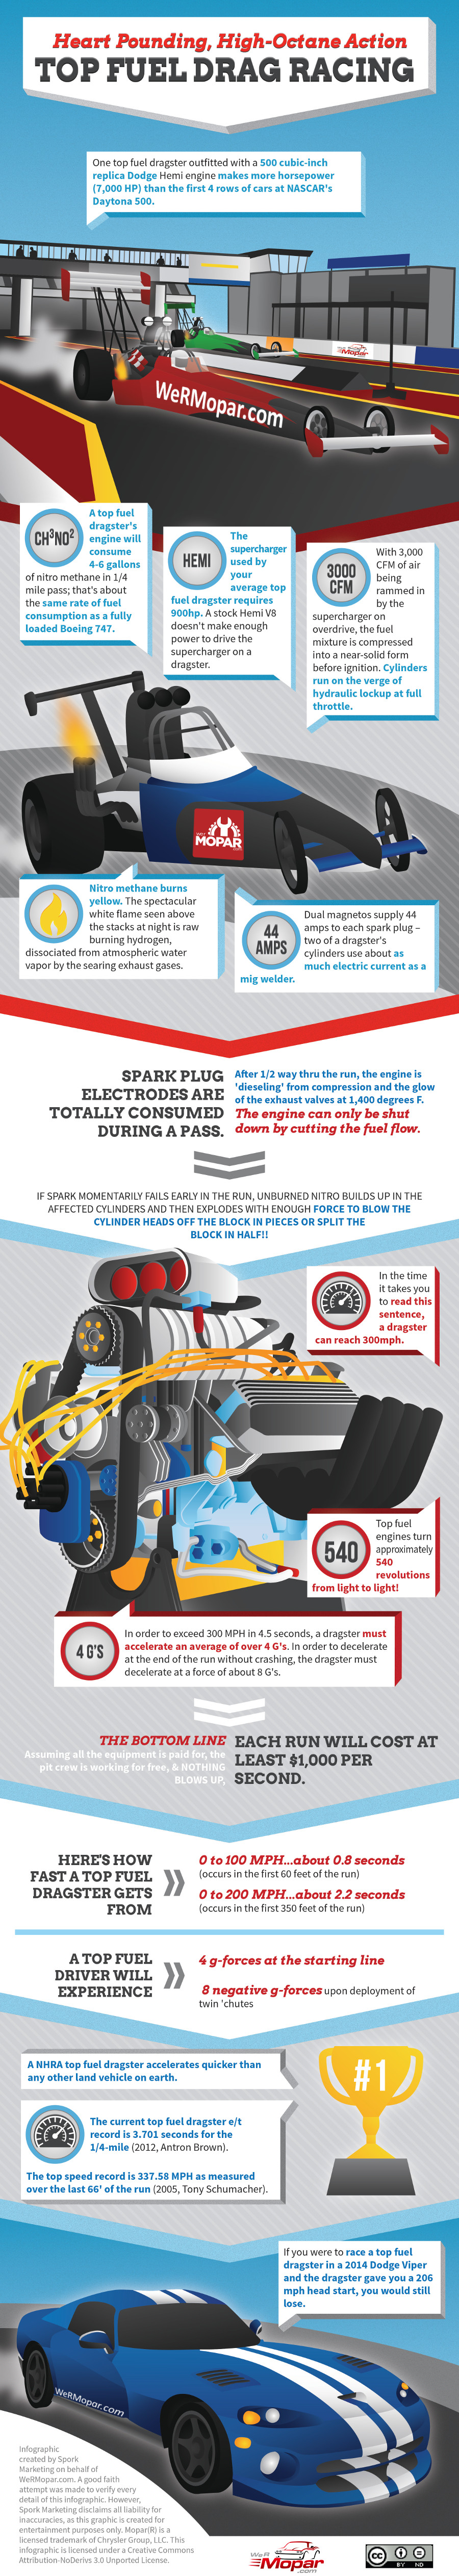 Top Fuel Drag Racing Facts and Figures